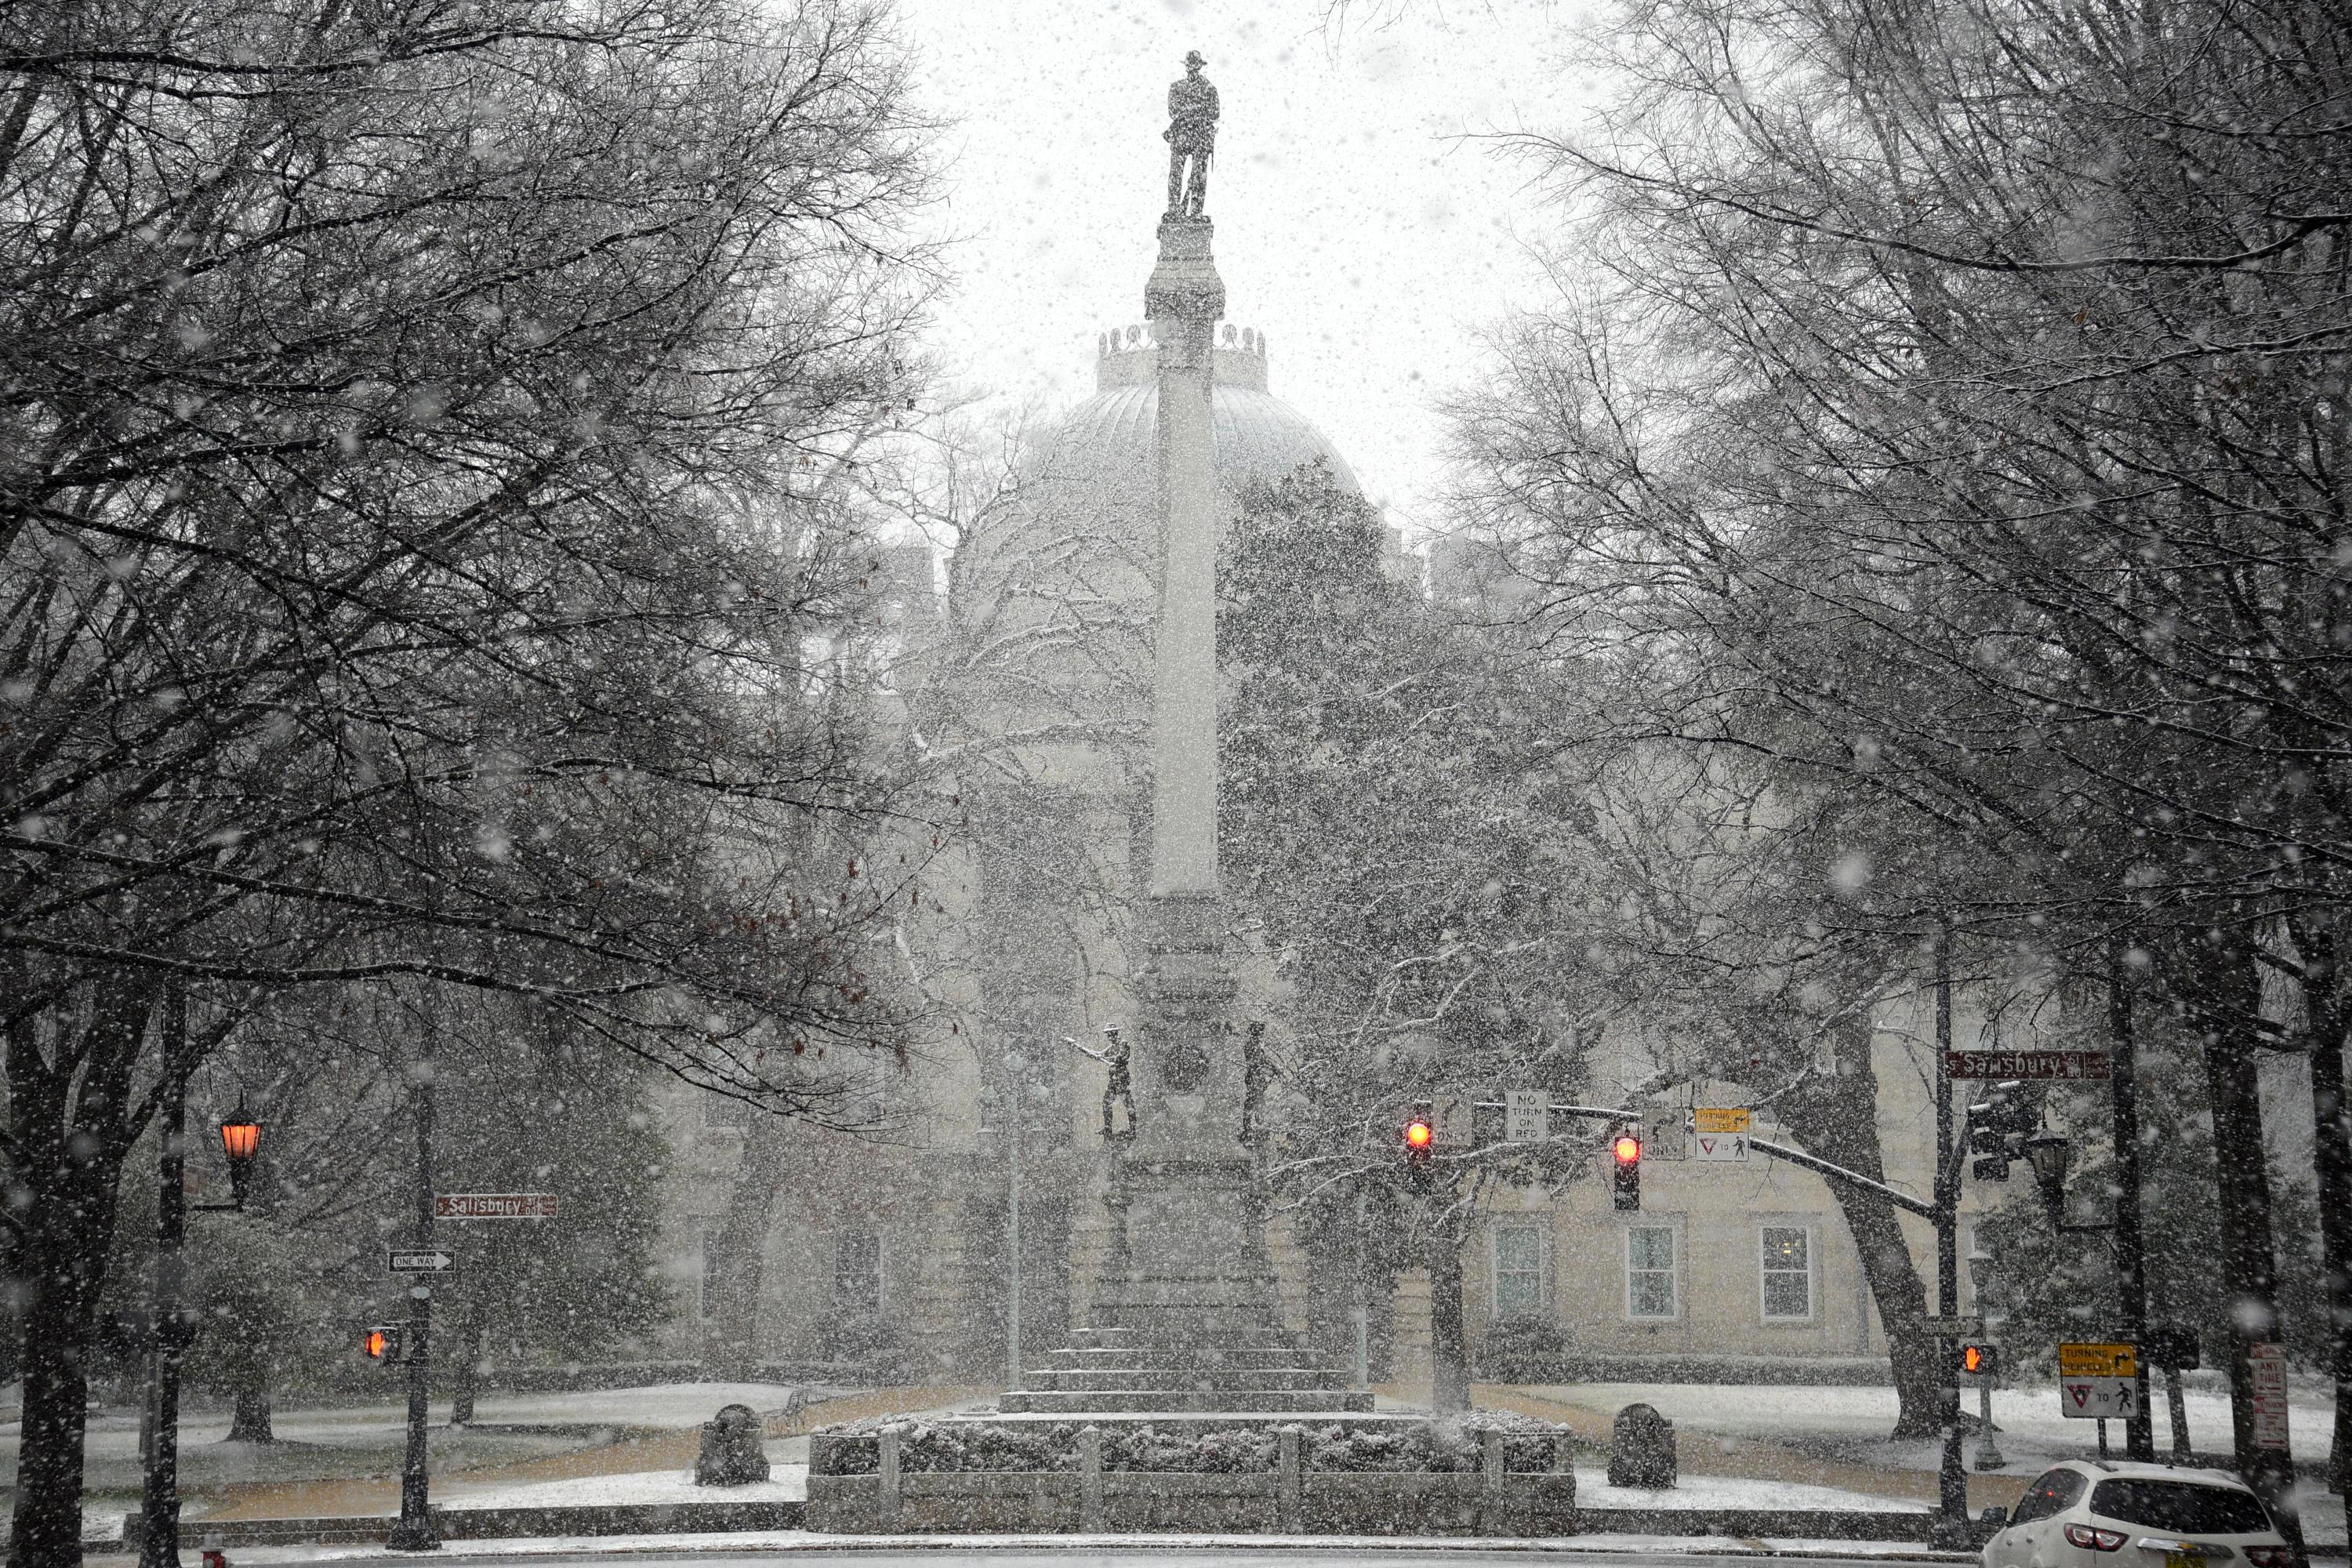 RALEIGH, NC - JANUARY 17: Snow falls on the Confederate Soldiers Monument at the State Capitol on January 17, 2018 in Raleigh, North Carolina. Governor Roy Cooper declared a State of Emergency yesterday ahead of the winter storm. (Photo by Lance King/Getty Images)